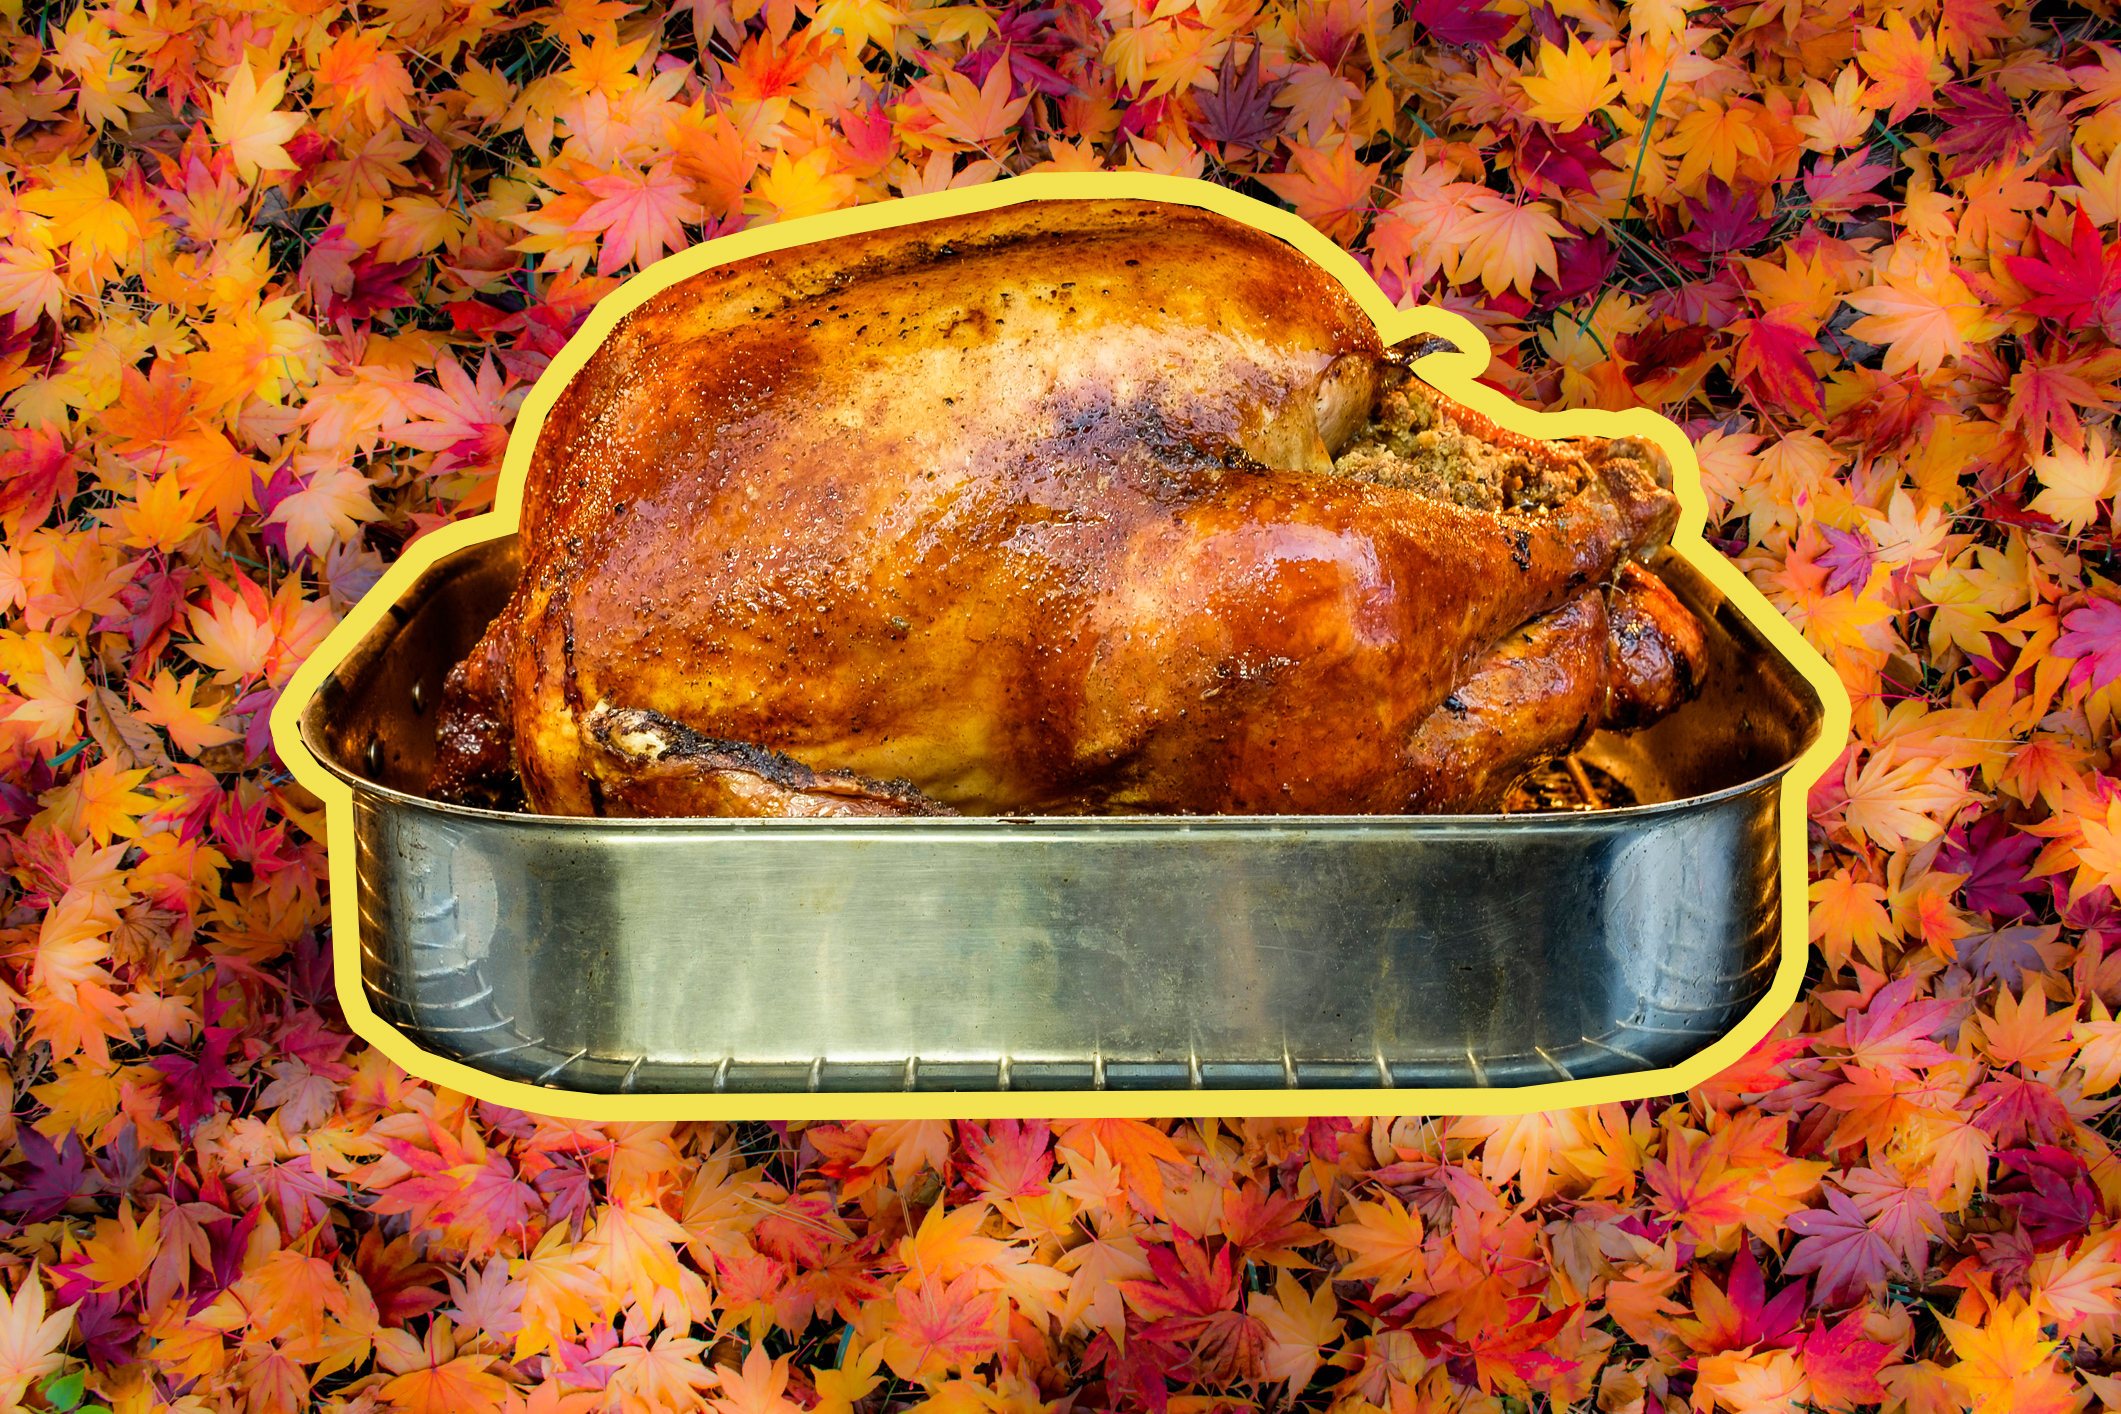 This is the dish you should bring to Friendsgiving dinner based on your zodiac sign